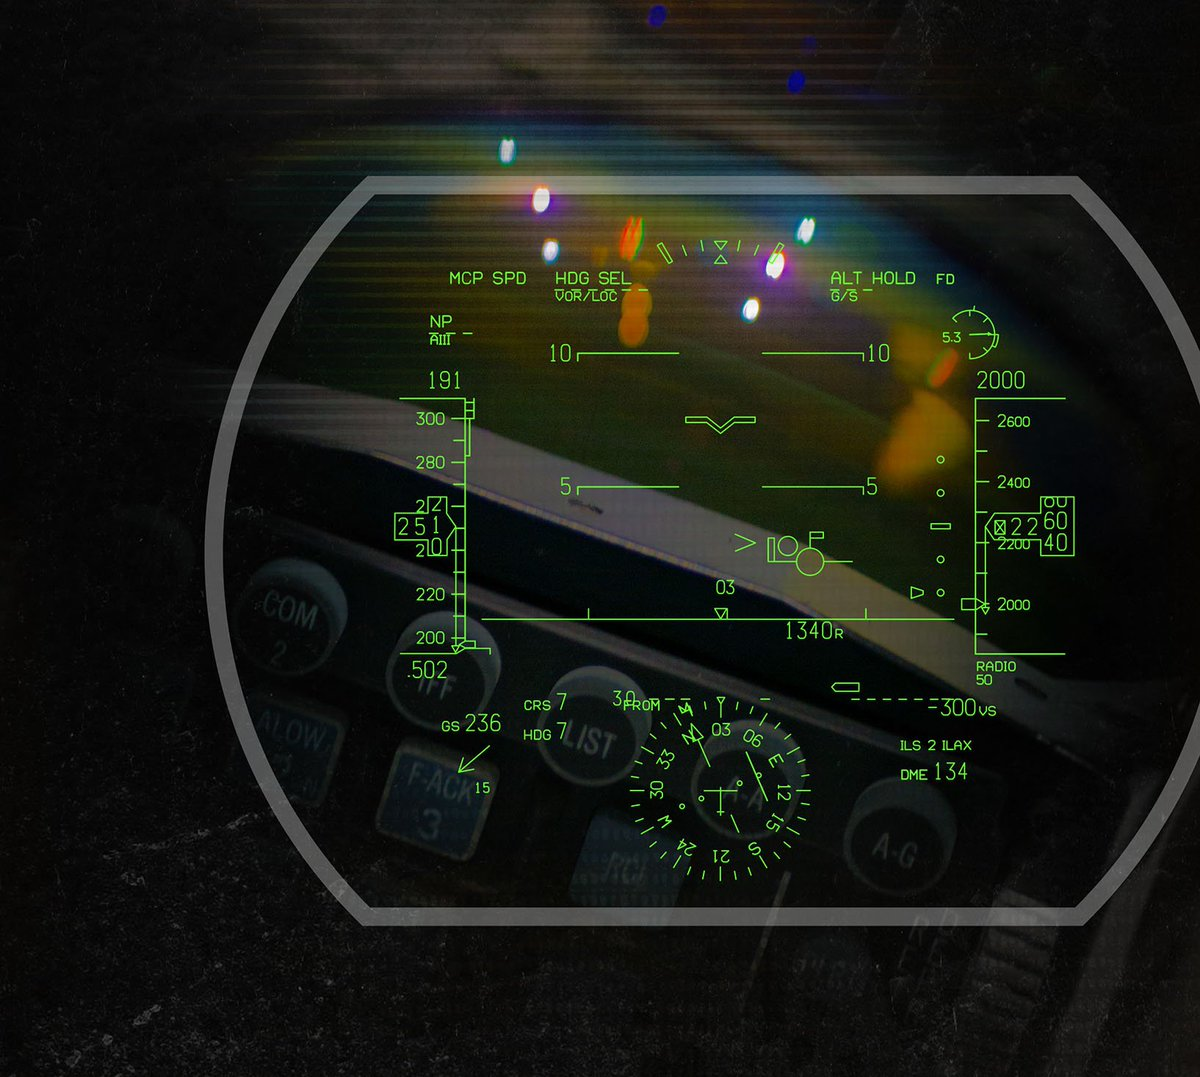 Modernizing the F-22's head-up display with our Digital Light Engine technology: https://t.co/WuO1x0ZaFT https://t.co/UgHqmOQSyp